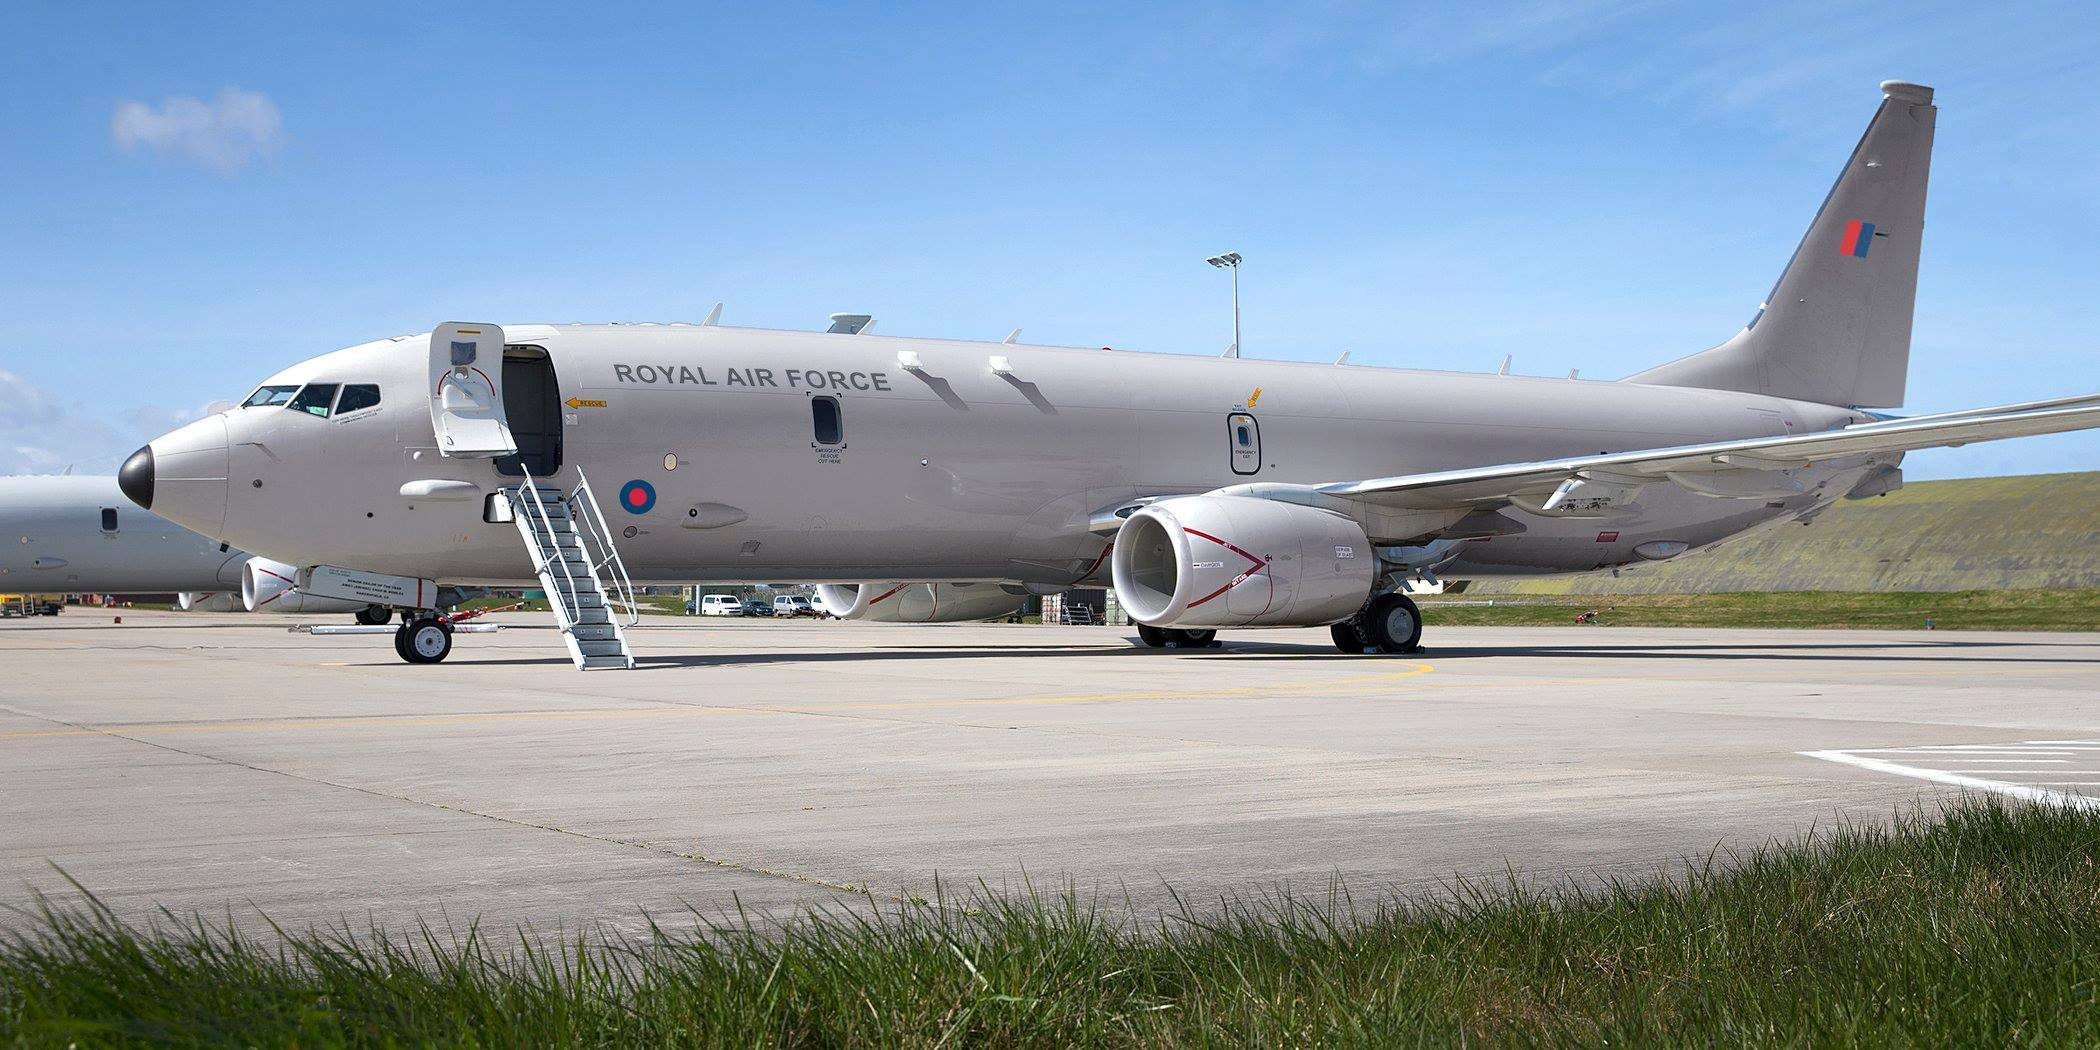 An artist impression of what a RAF P-8 Poseidon aircraft will look like.